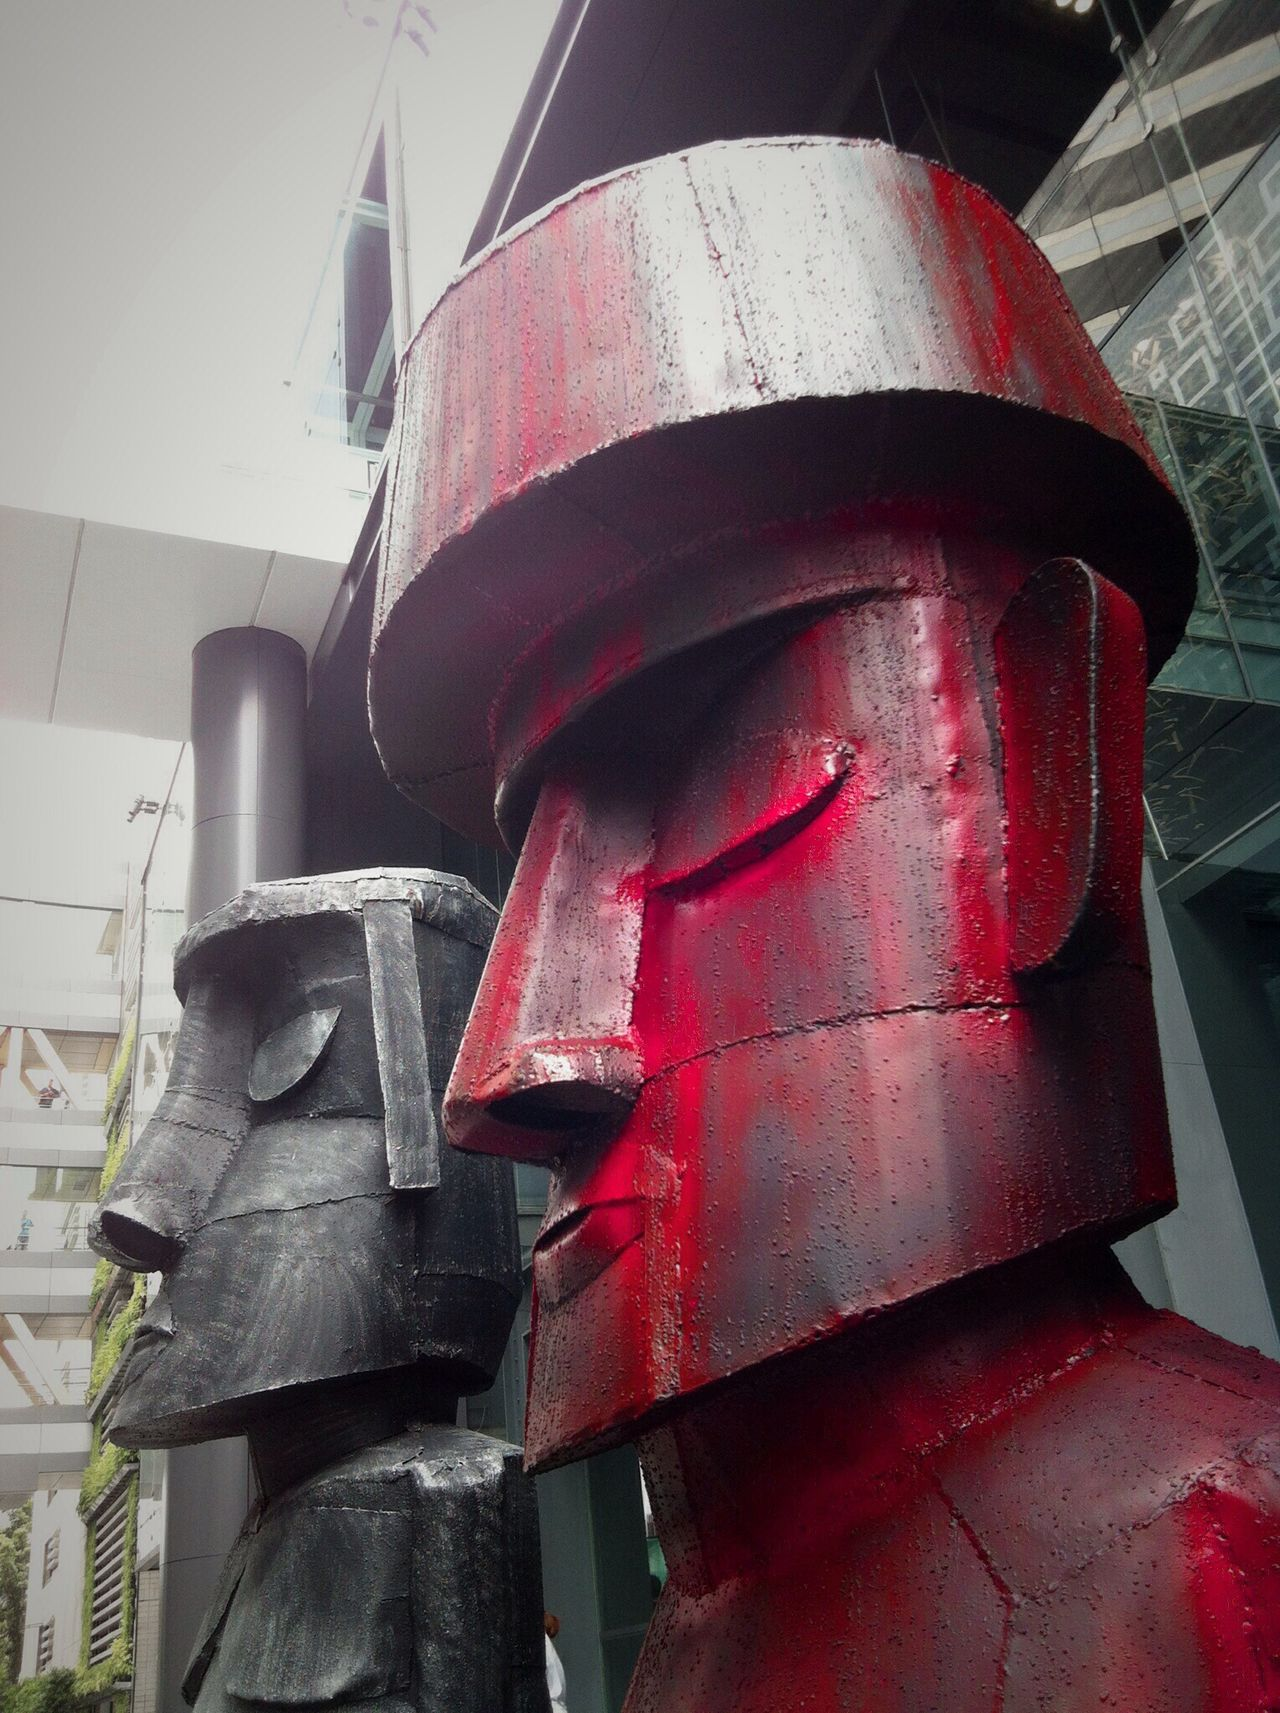 TakeoverContrast Recycled Art Metal Art Sculpture Moai Monochrome Red Only At Shopping Complex